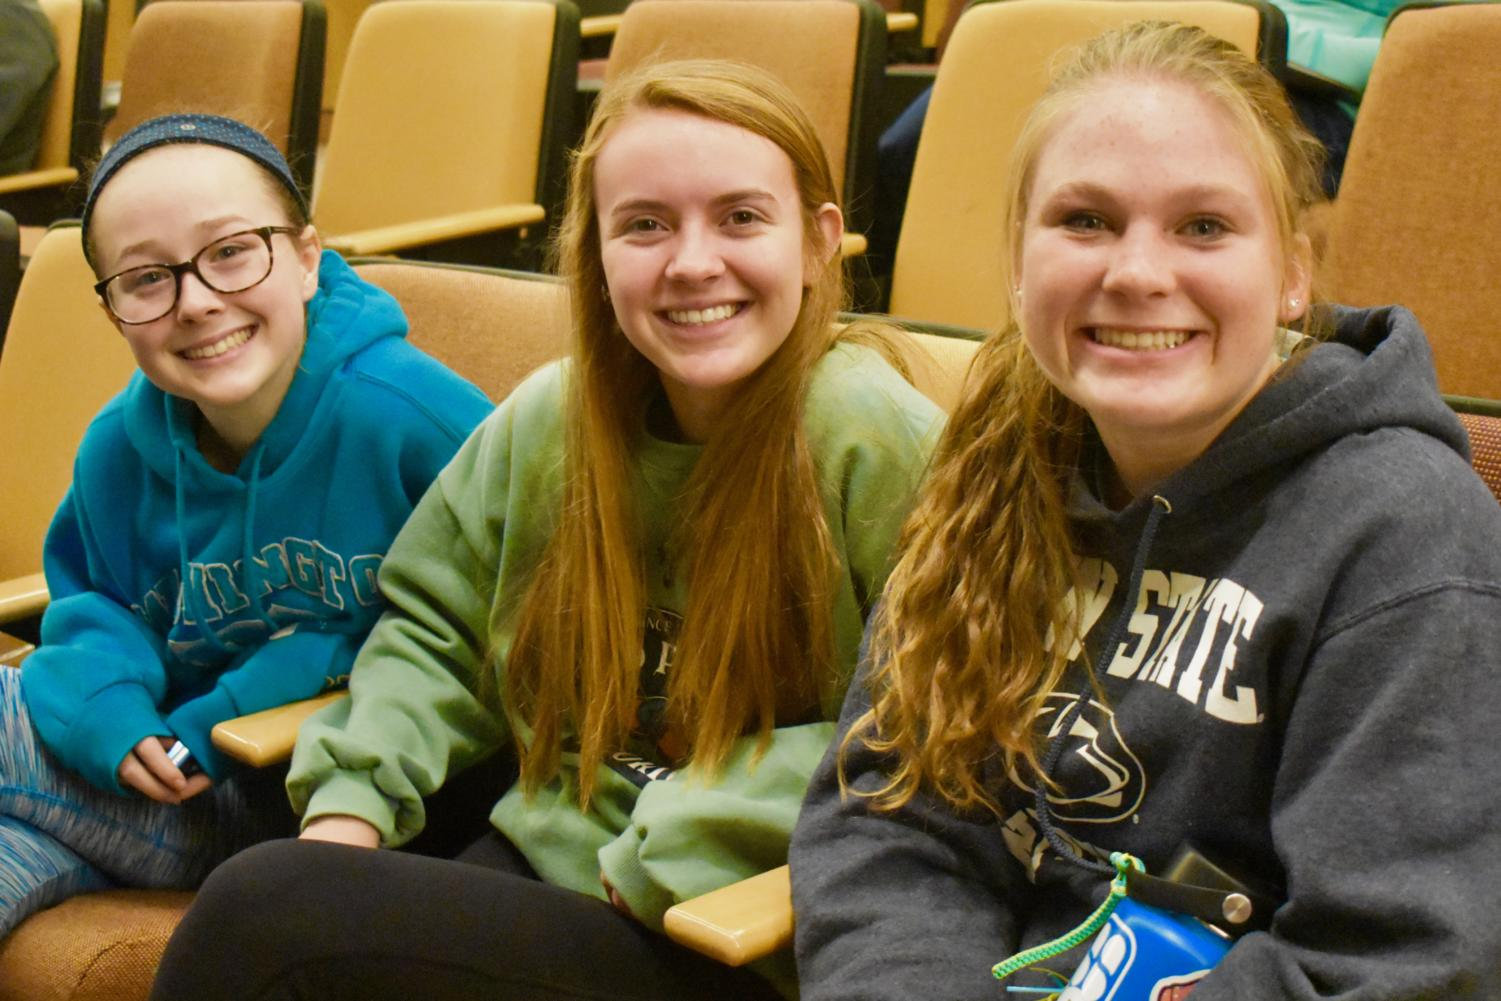 Juniors+Zoe+Hughes%2C+Kayla+Poulson+and+Caitlin+Newton+smile+during+a+round+of+%E2%80%9CFamily+Feud.%E2%80%9D